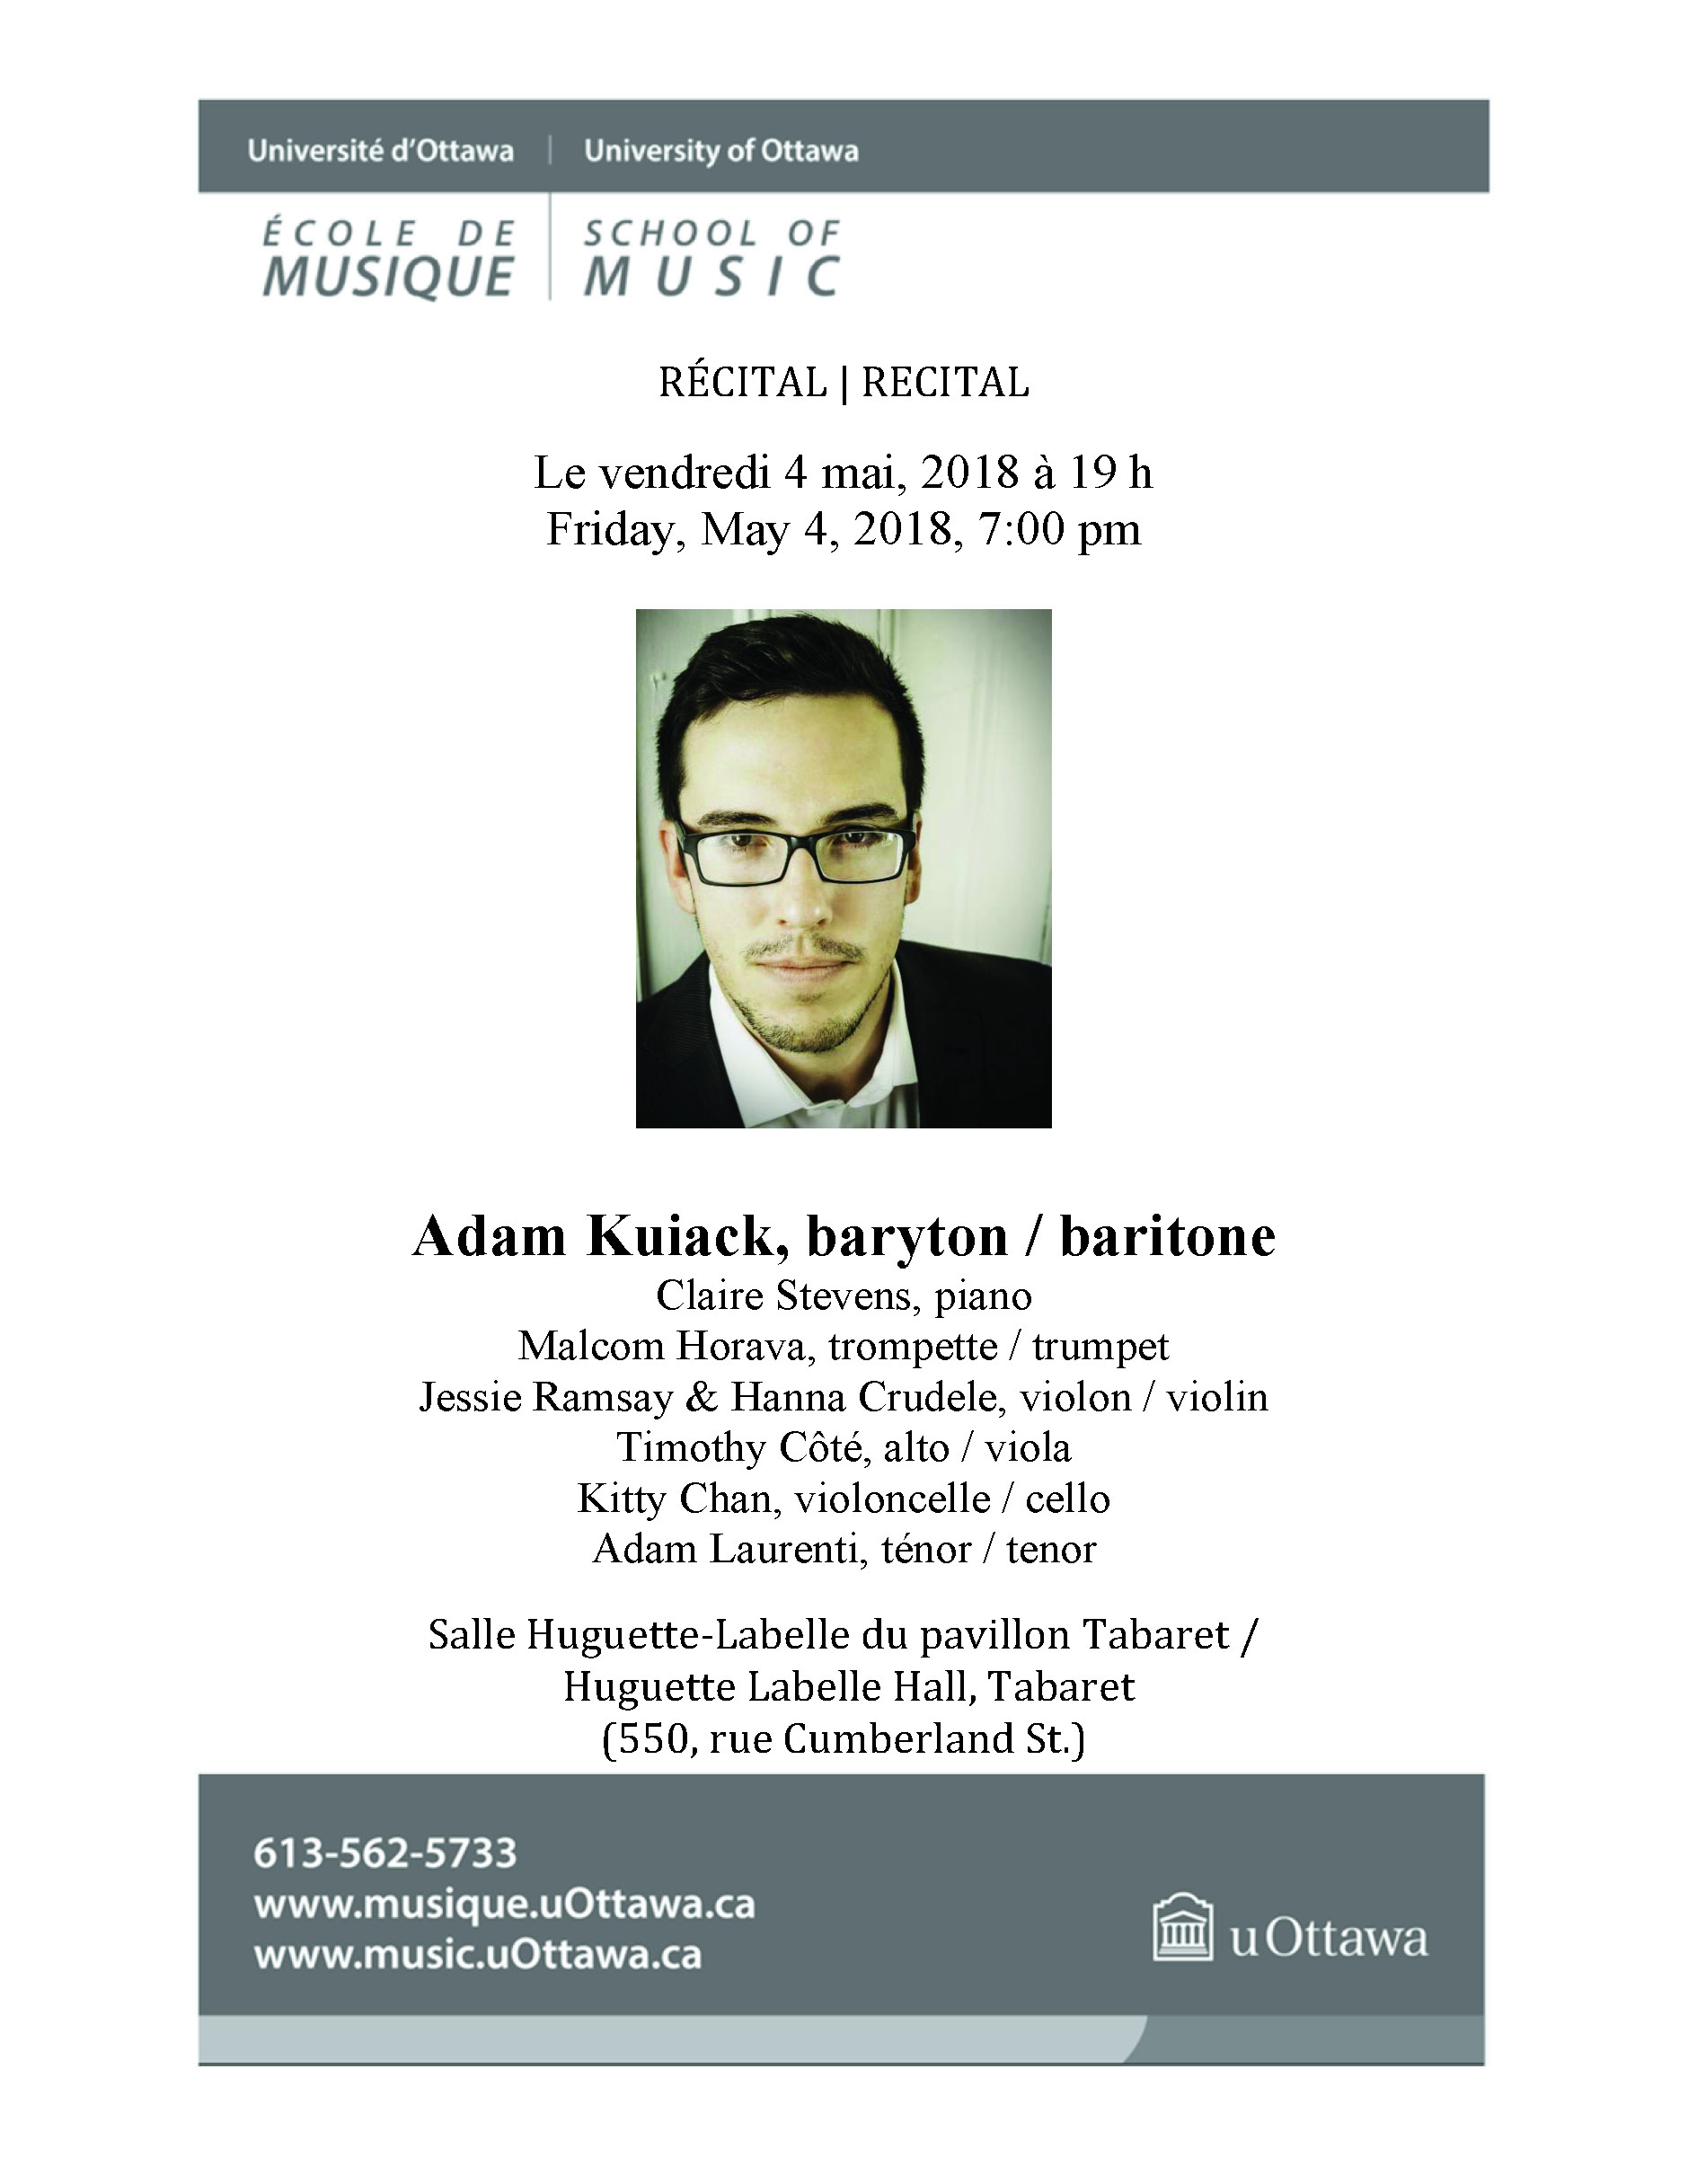 Page one of Adam Kuiack's recital program